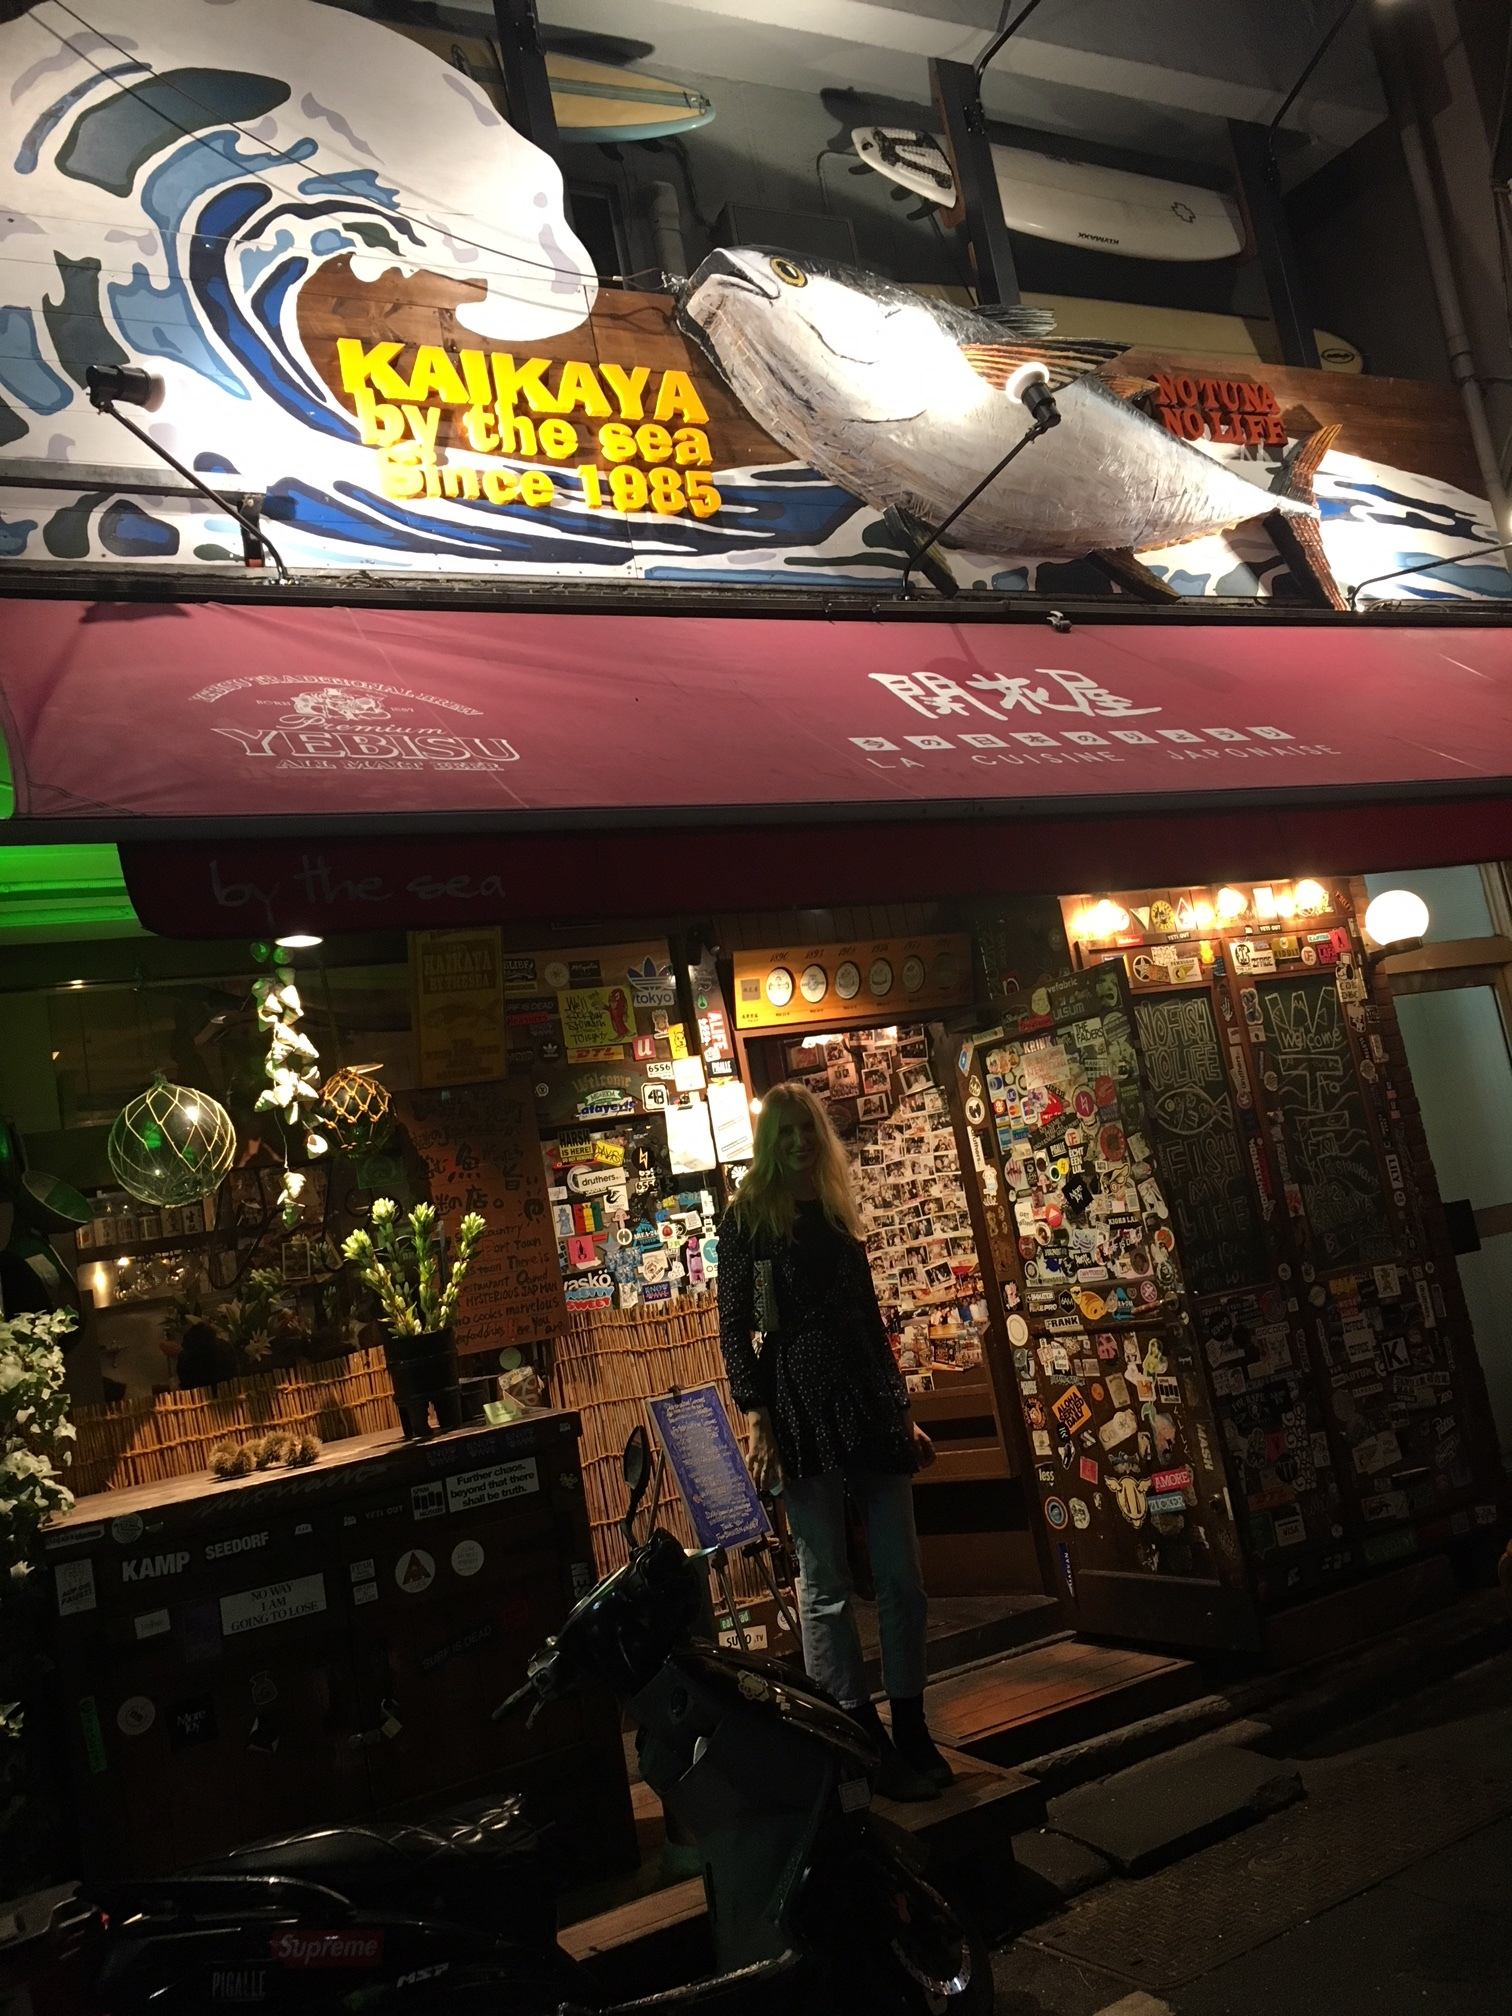 Kaikaya by the sea in Tokyo, one of the best meal experiences I've ever had.